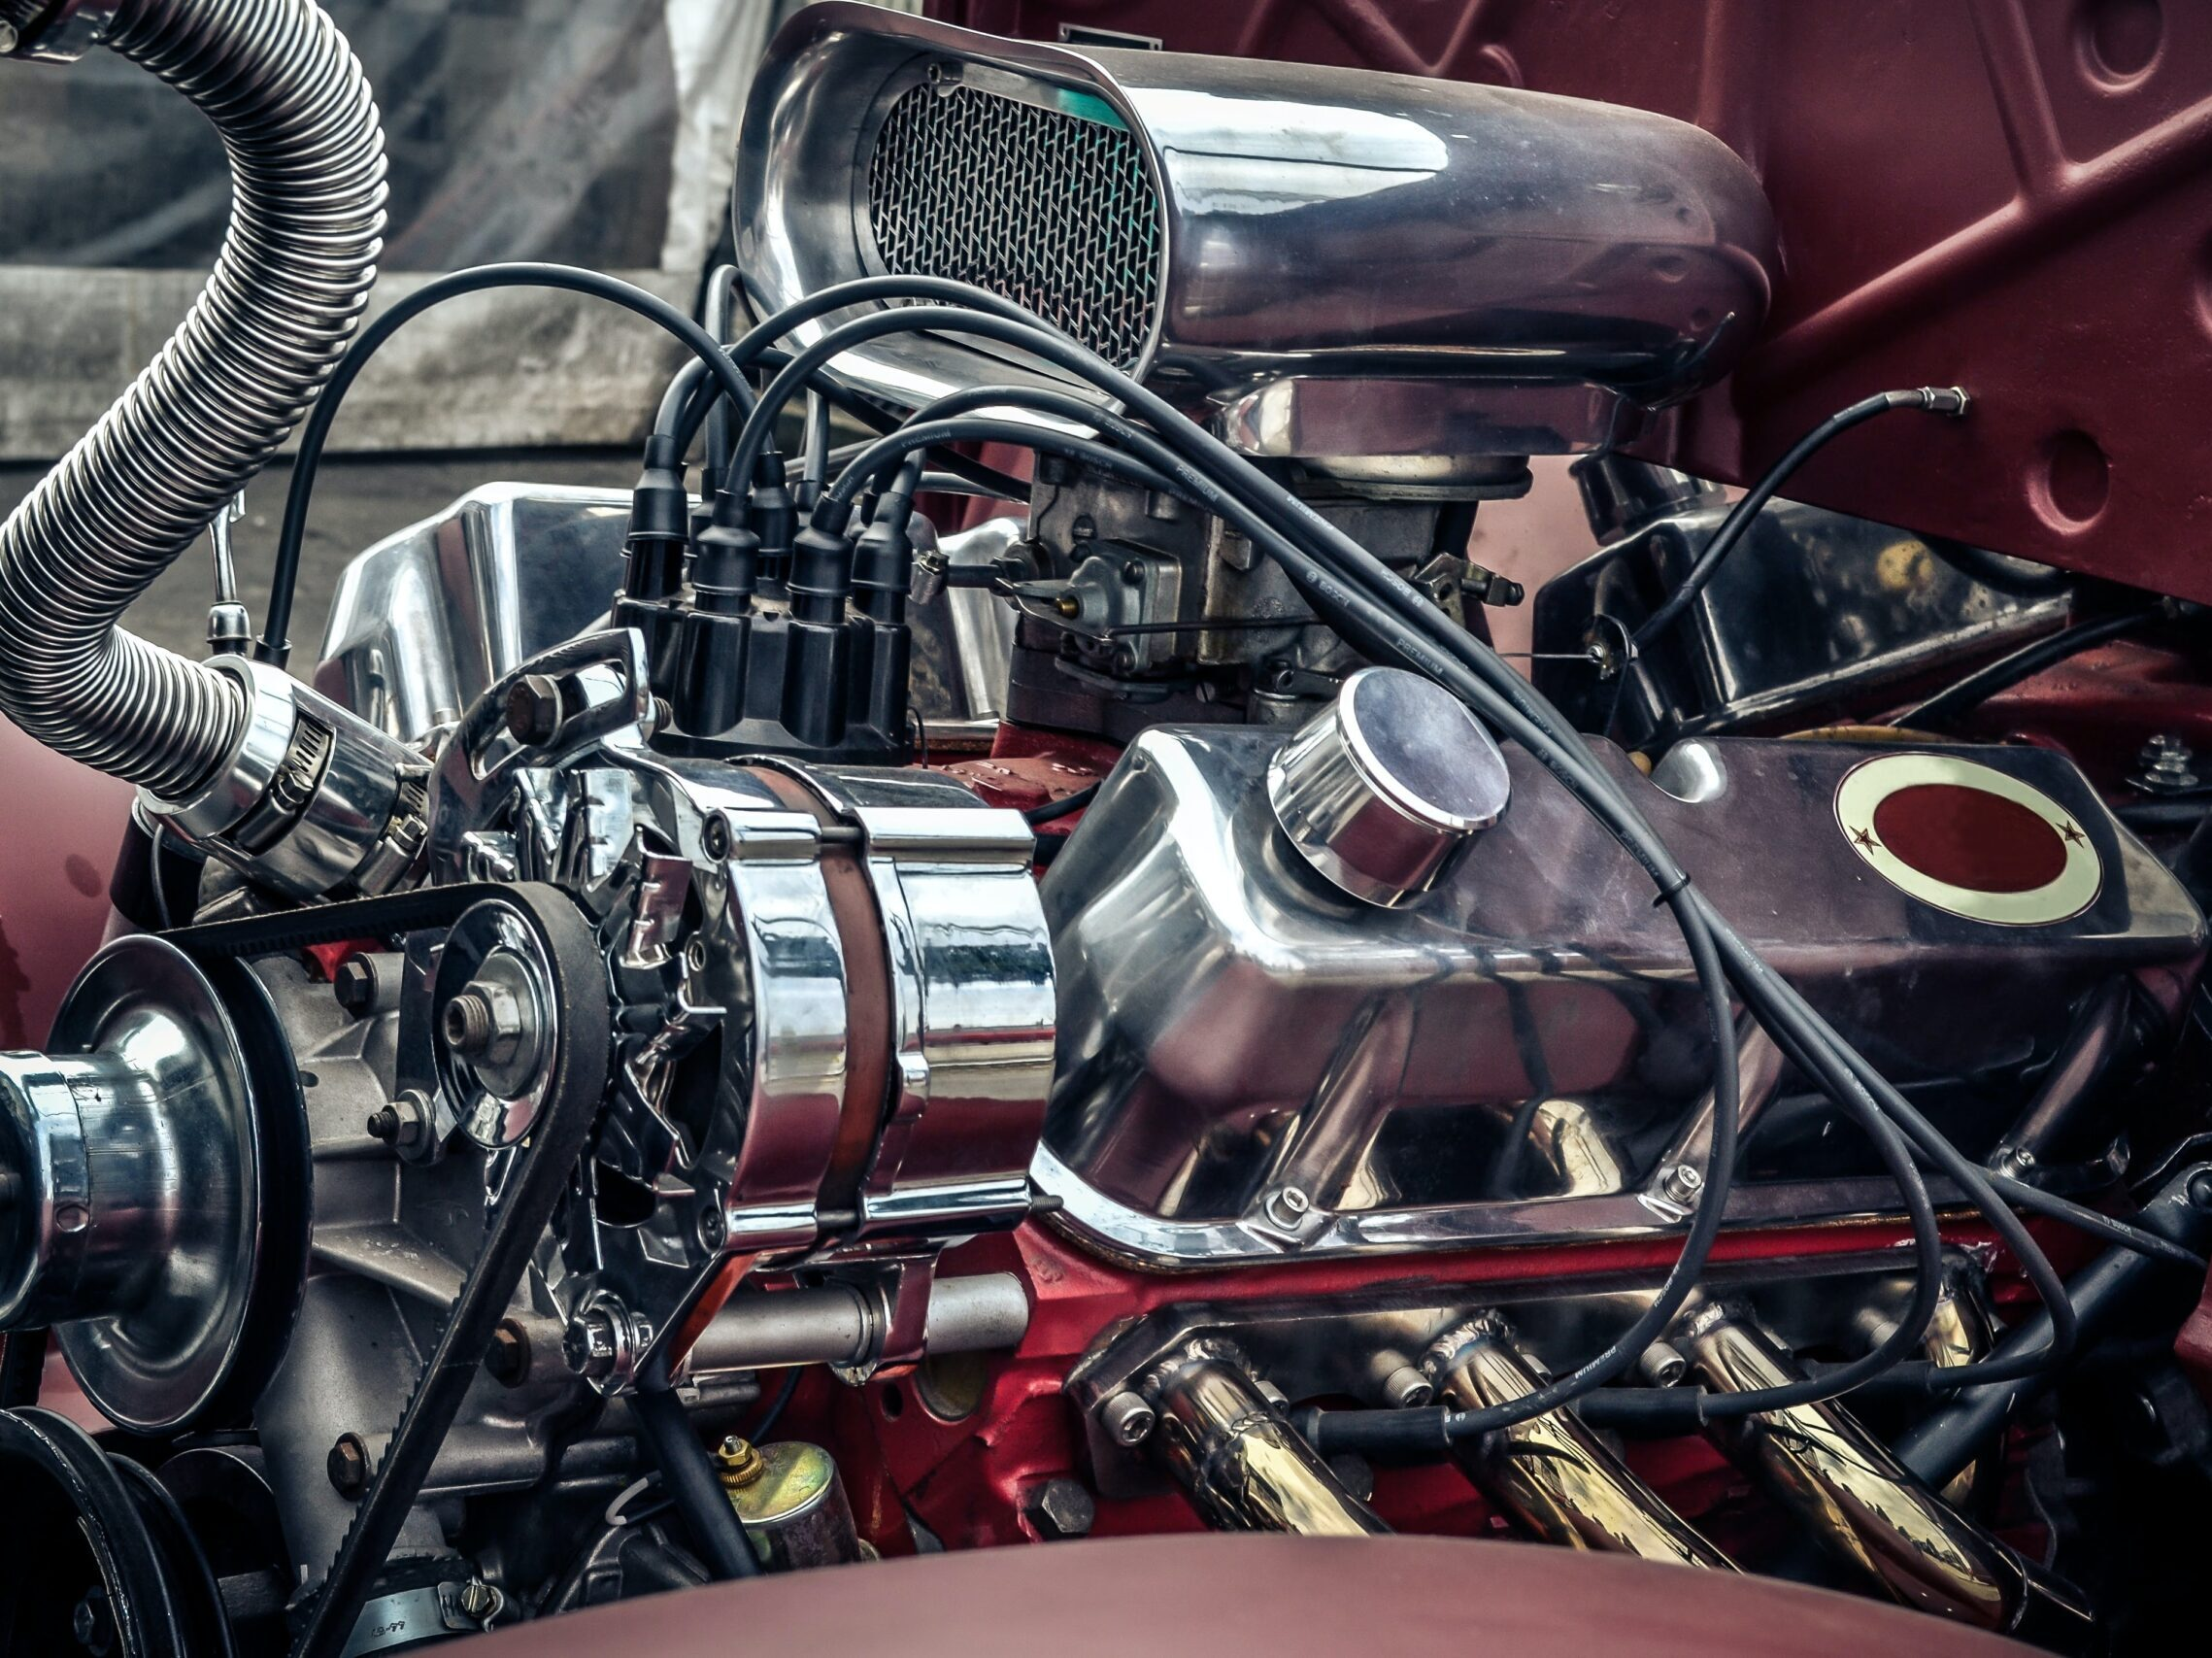 red and silver motorcycle engine